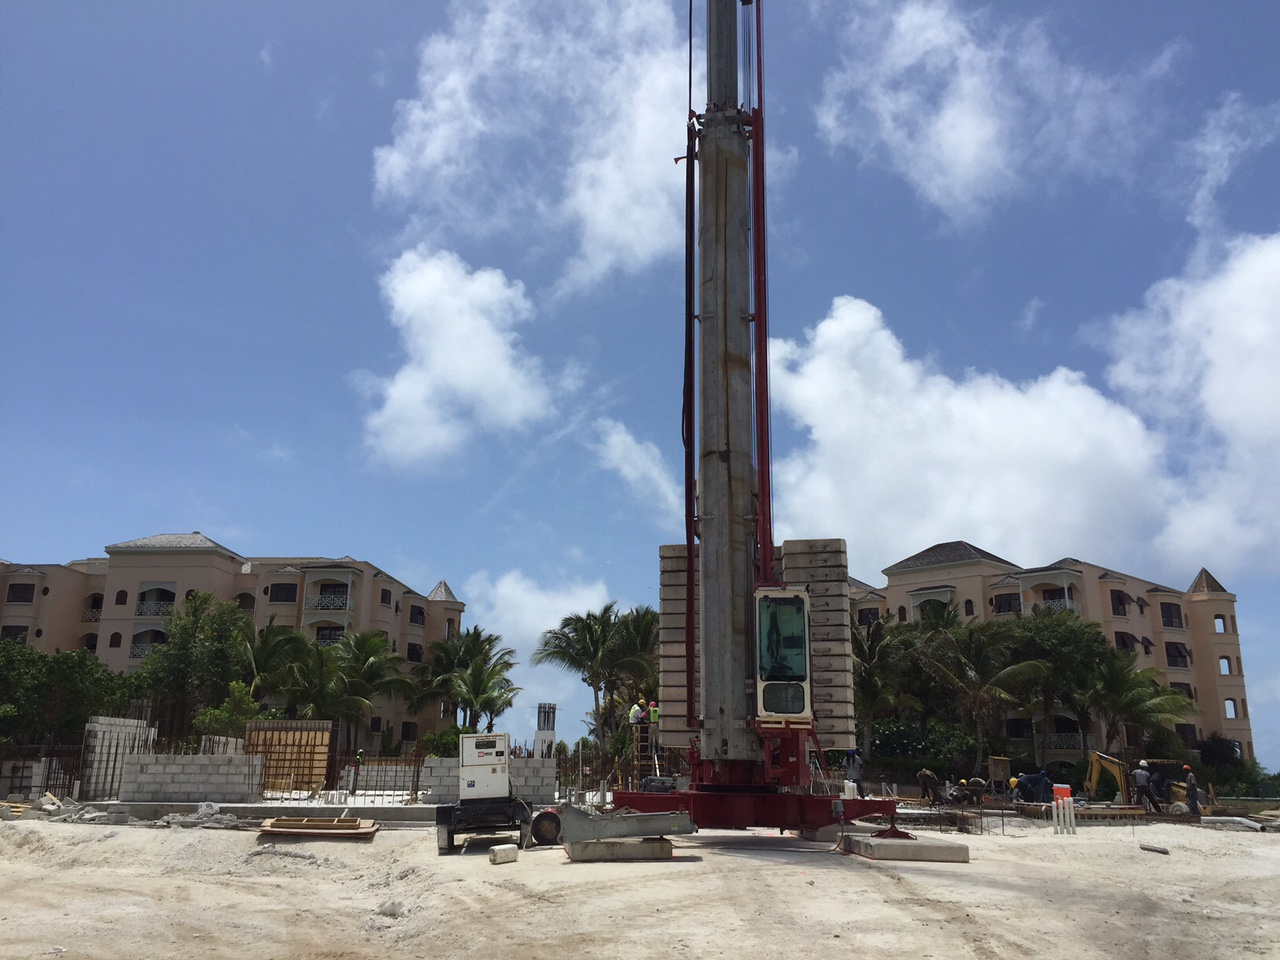 Standing on the site of The Crane Private Residences, looking back between Building 4 and 5 of The Crane.